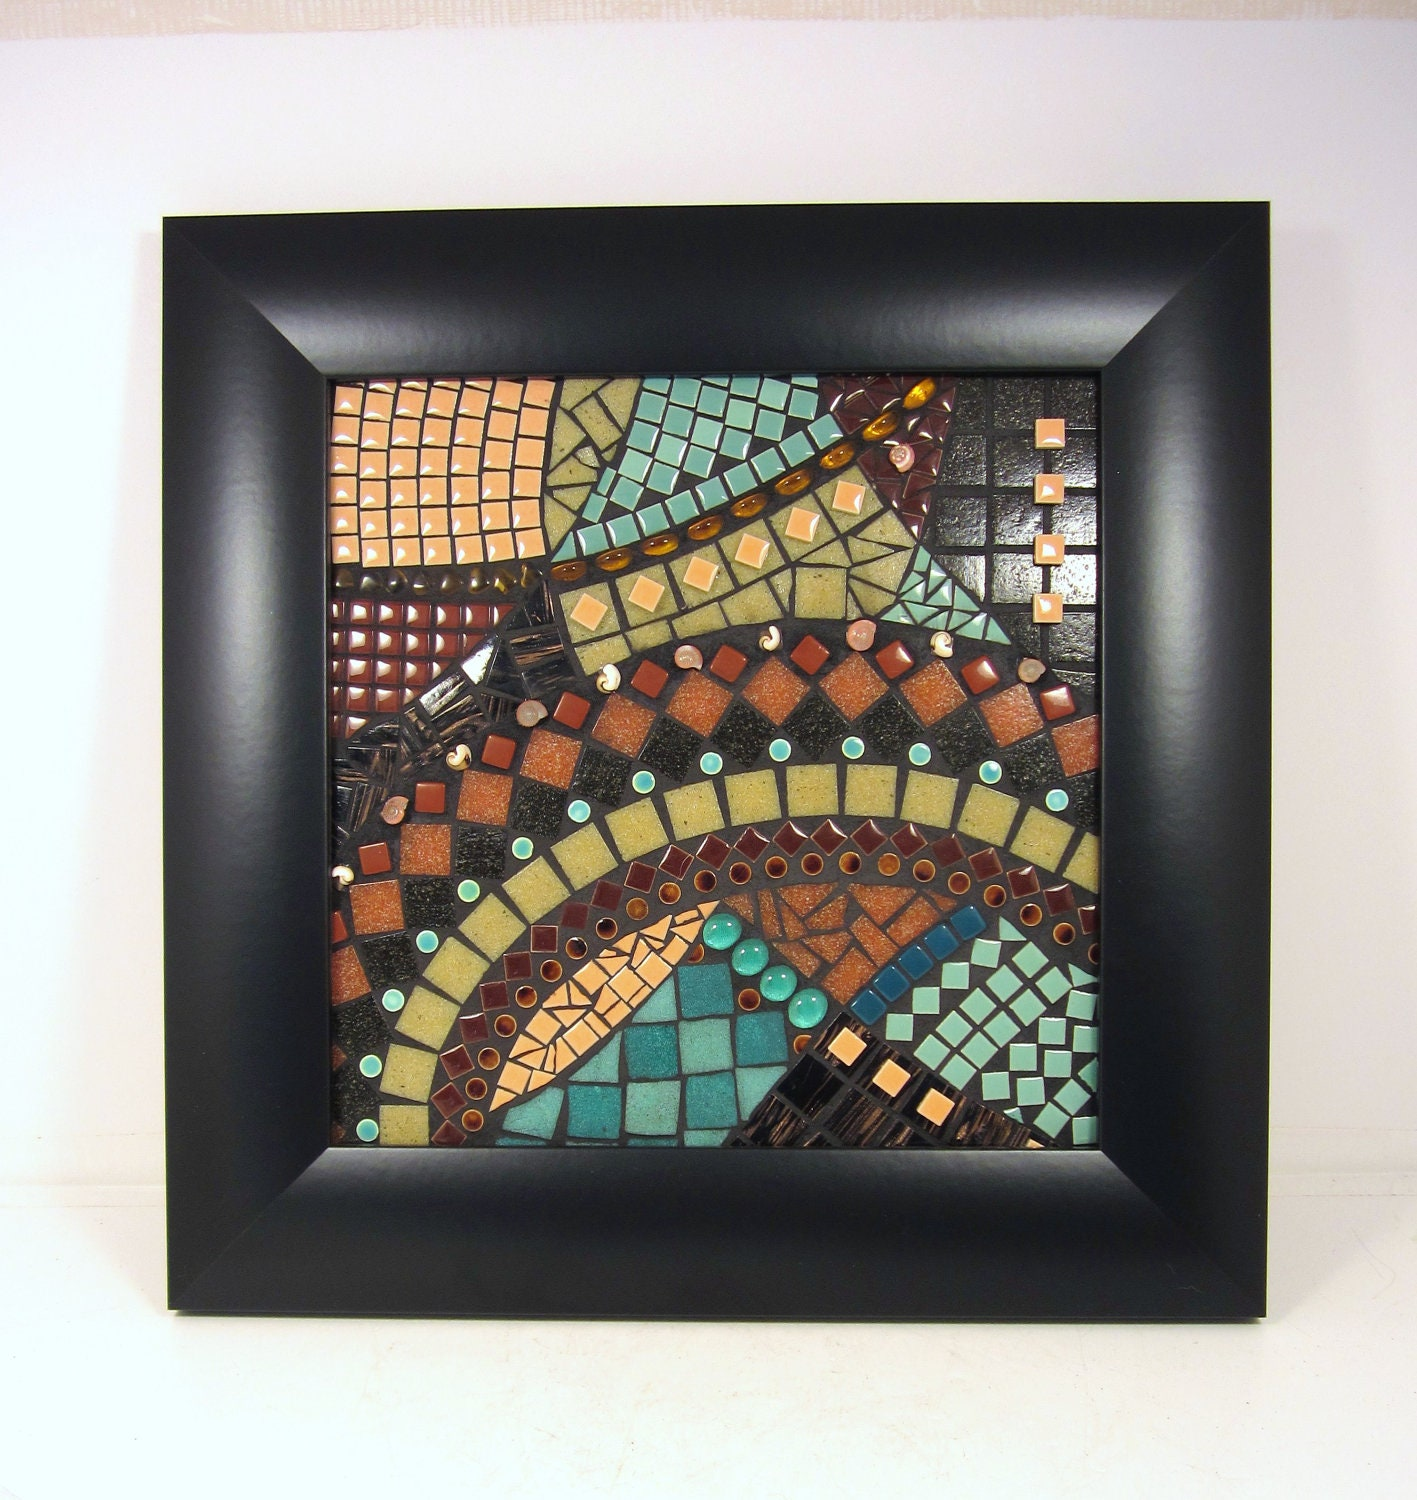 Mosaic art -- CURRENTS -- mostly neutrals with teal accents, professionally framed